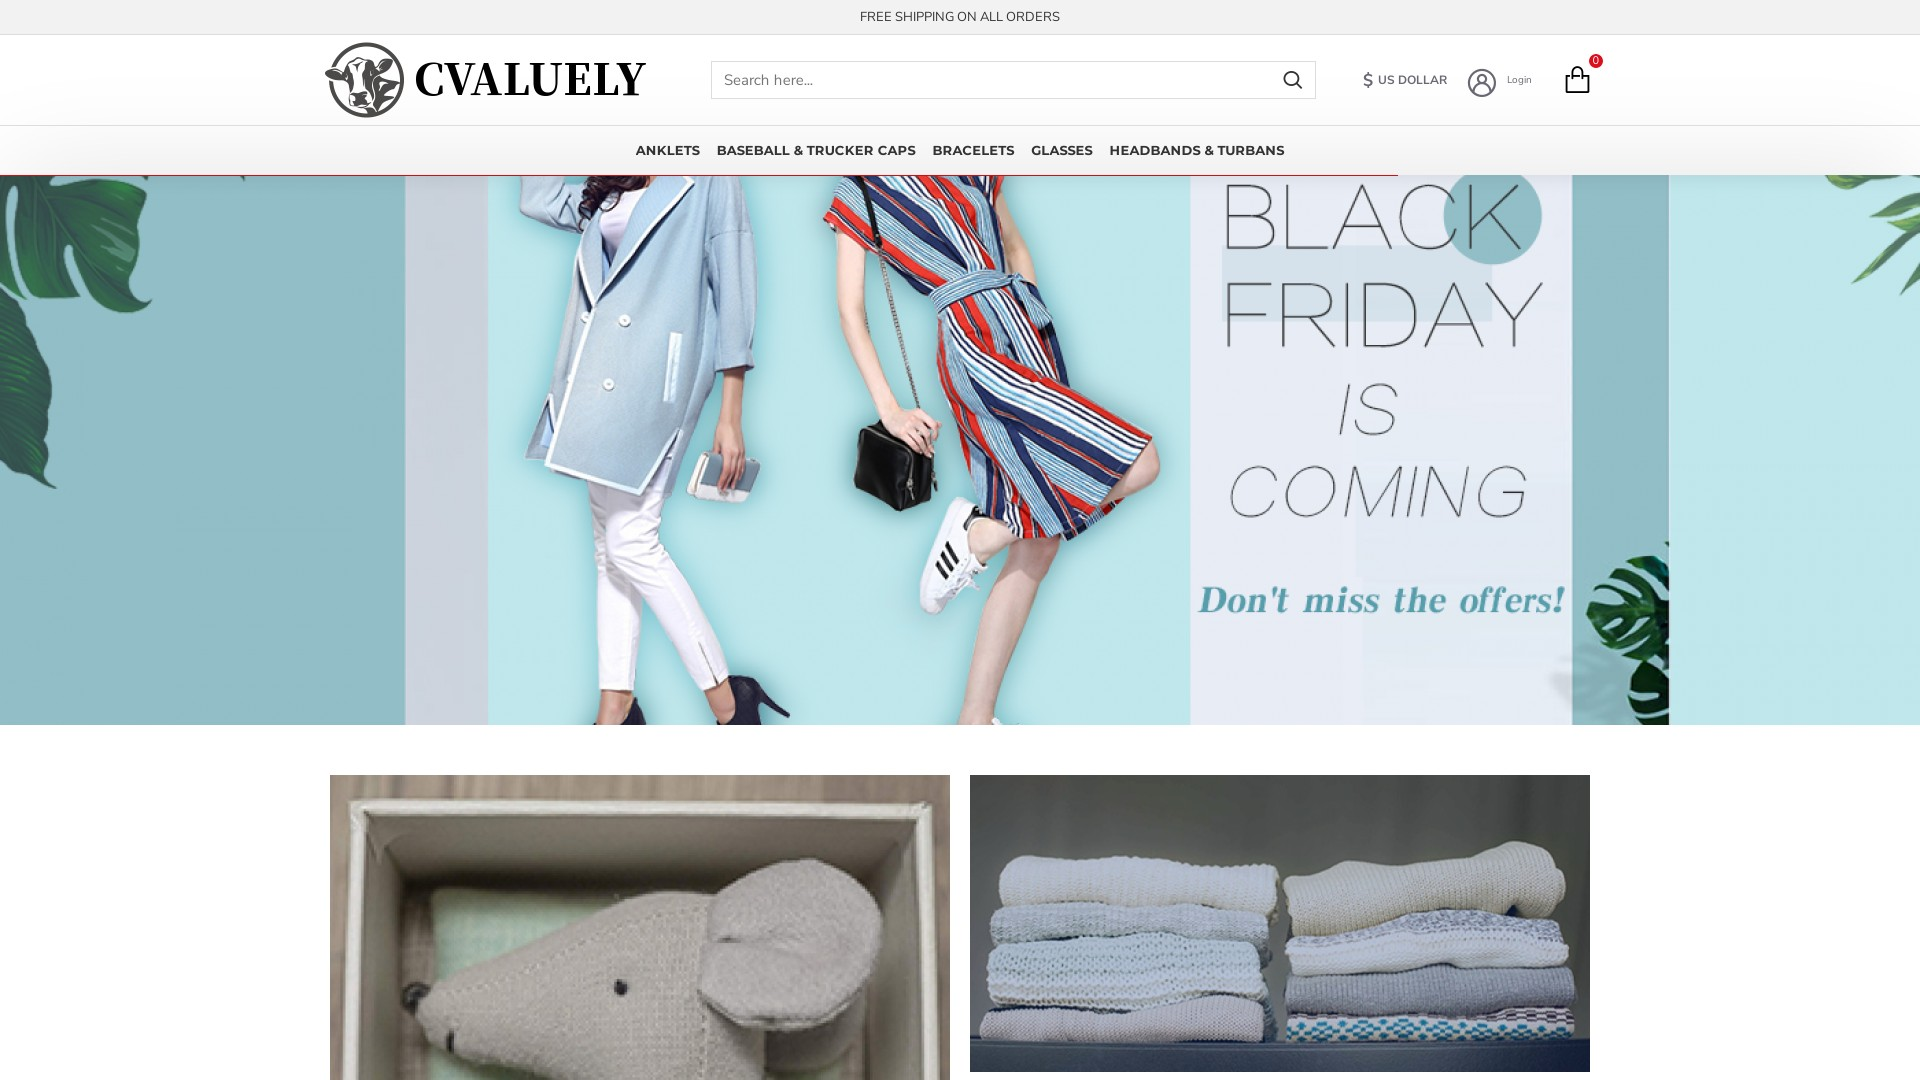 Is Cvaluely a Scam? See the Review of the Online Store